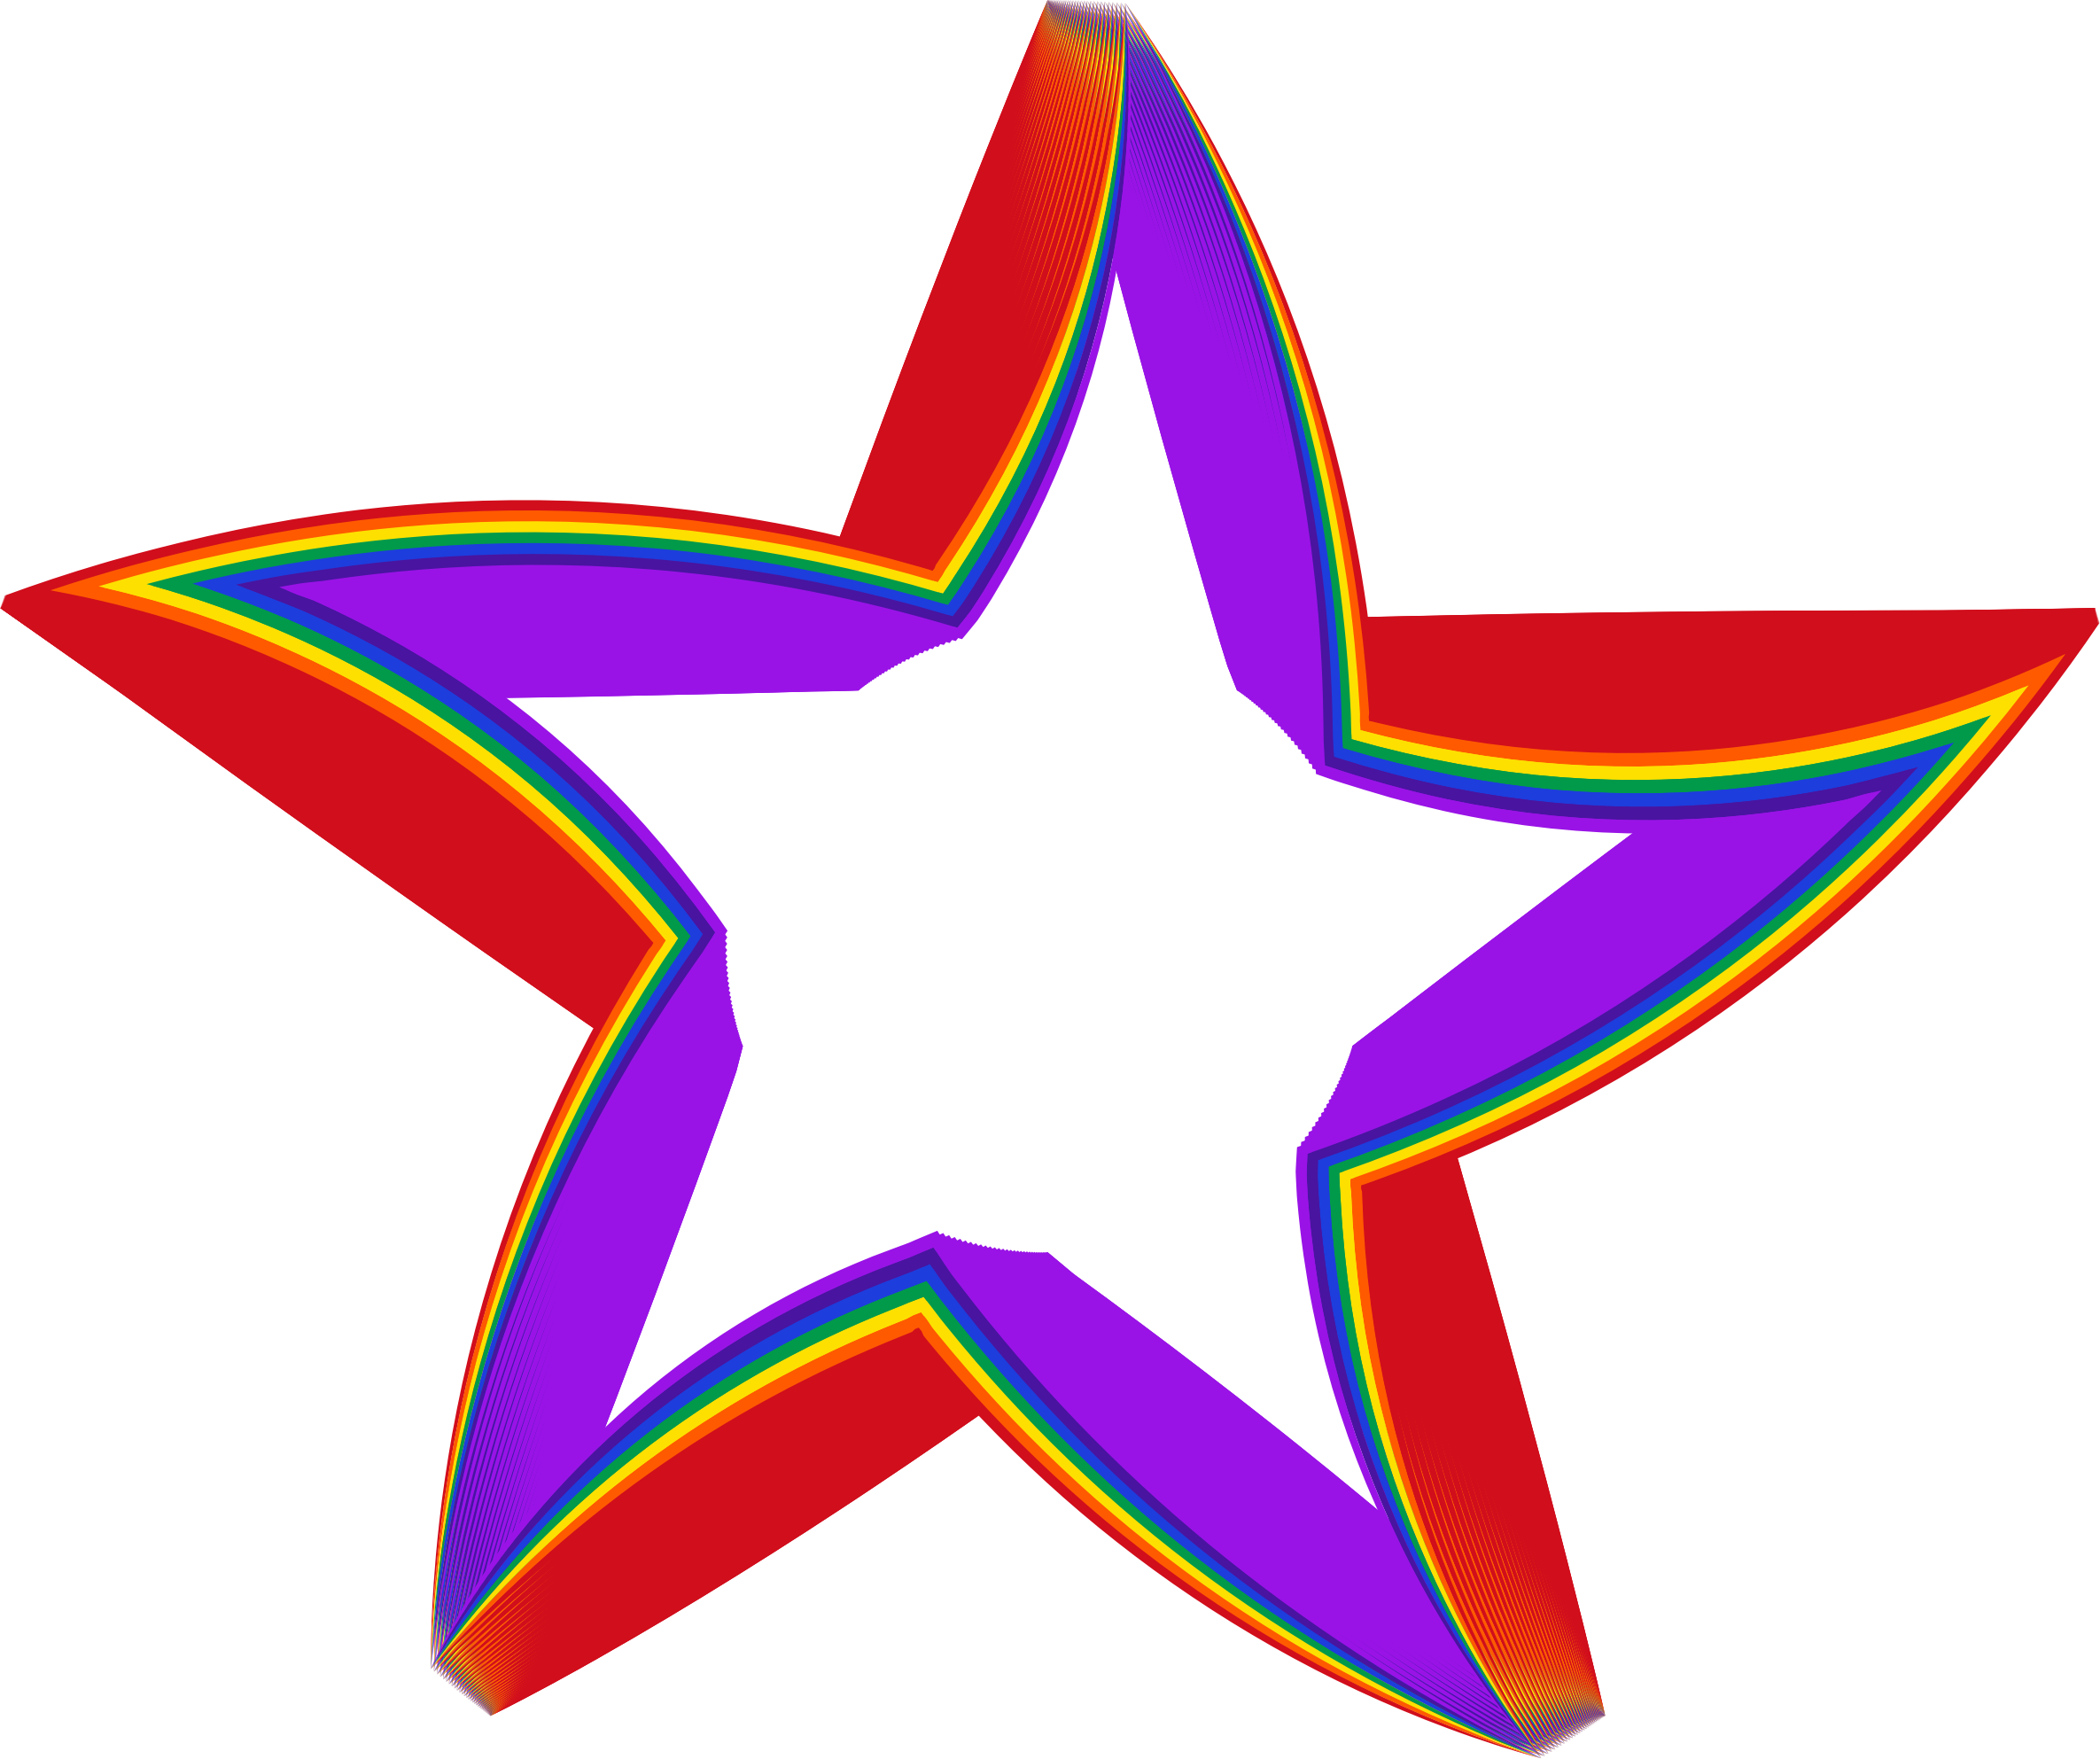 Star clipart 3d clip art black and white Clipart - 3D Rainbow Star clip art black and white